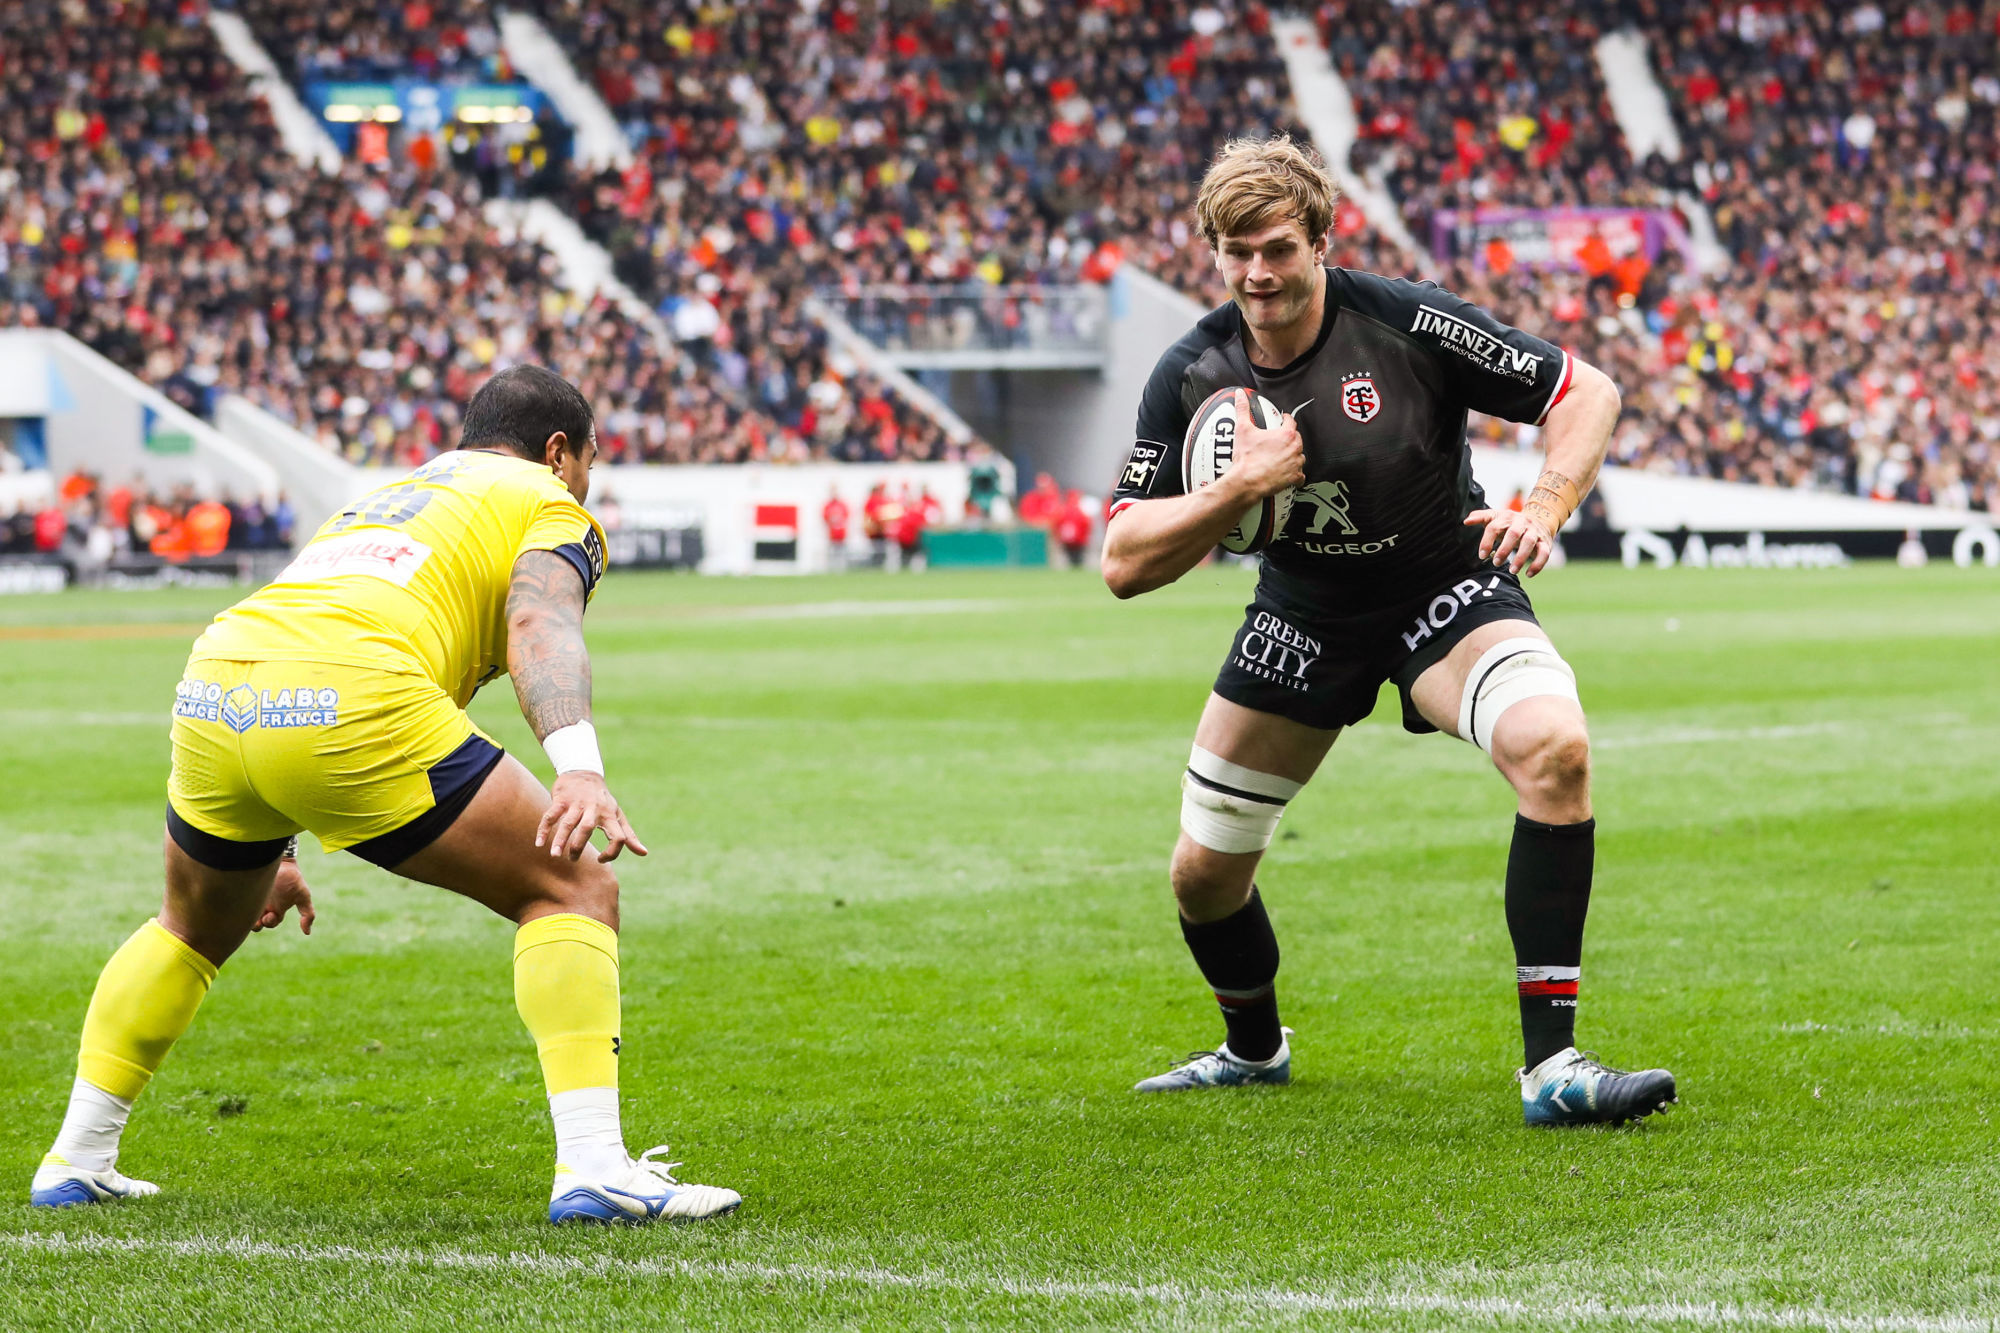 Top 14 - Richie Gray va quitter Toulouse - Sport.fr